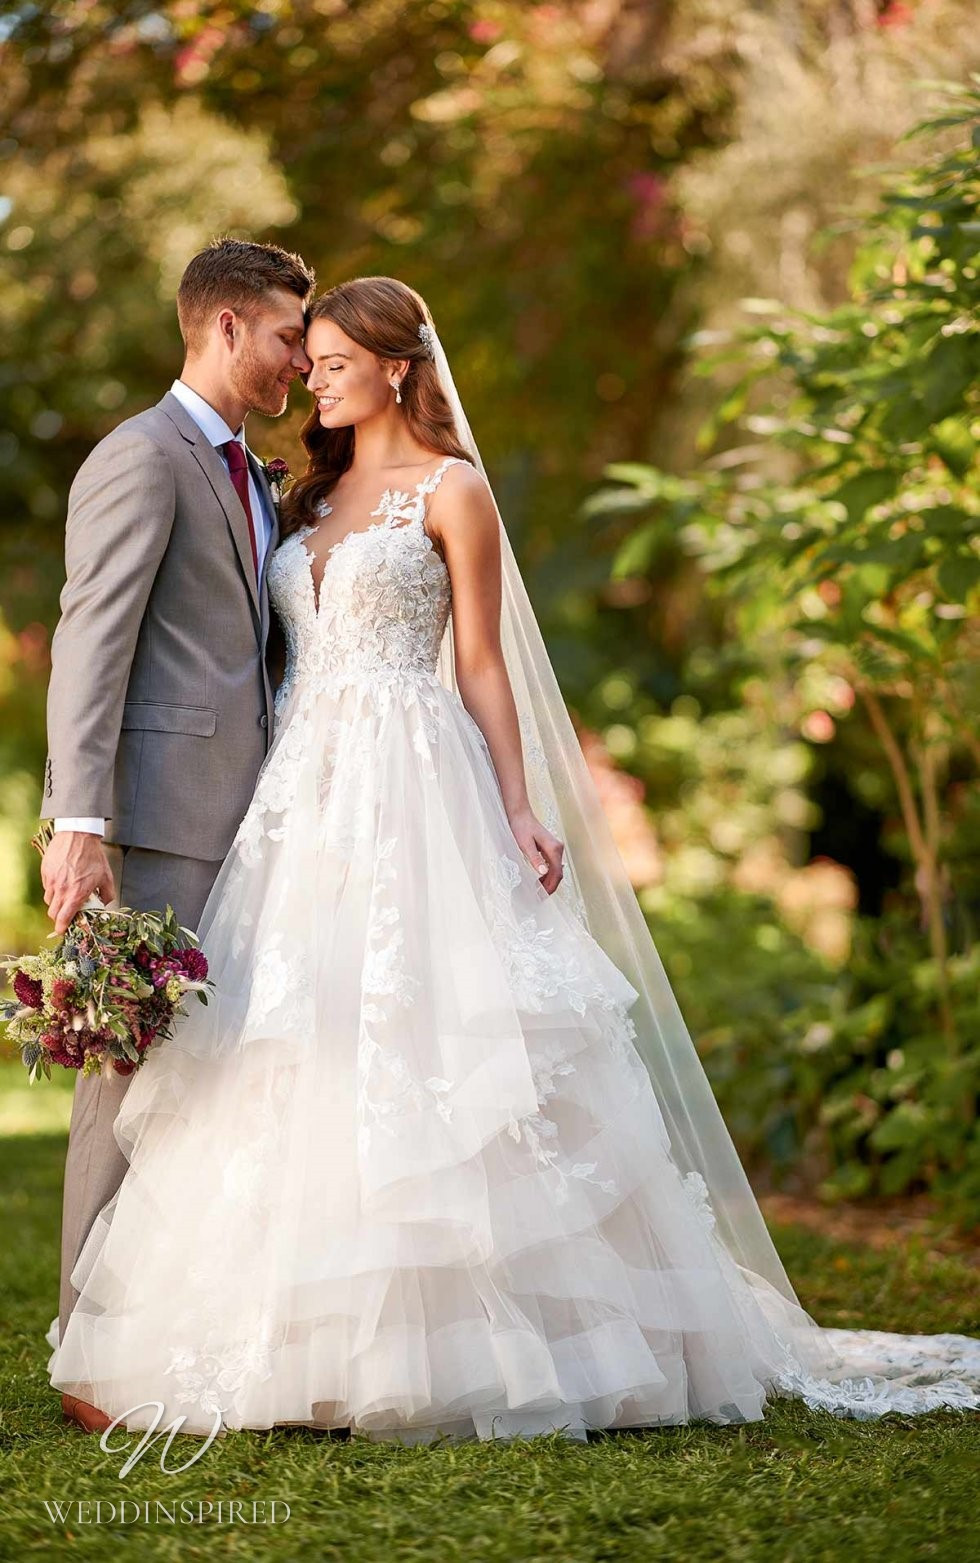 An Essense of Australia lace and tulle A-line wedding dress with a layered ruffle skirt